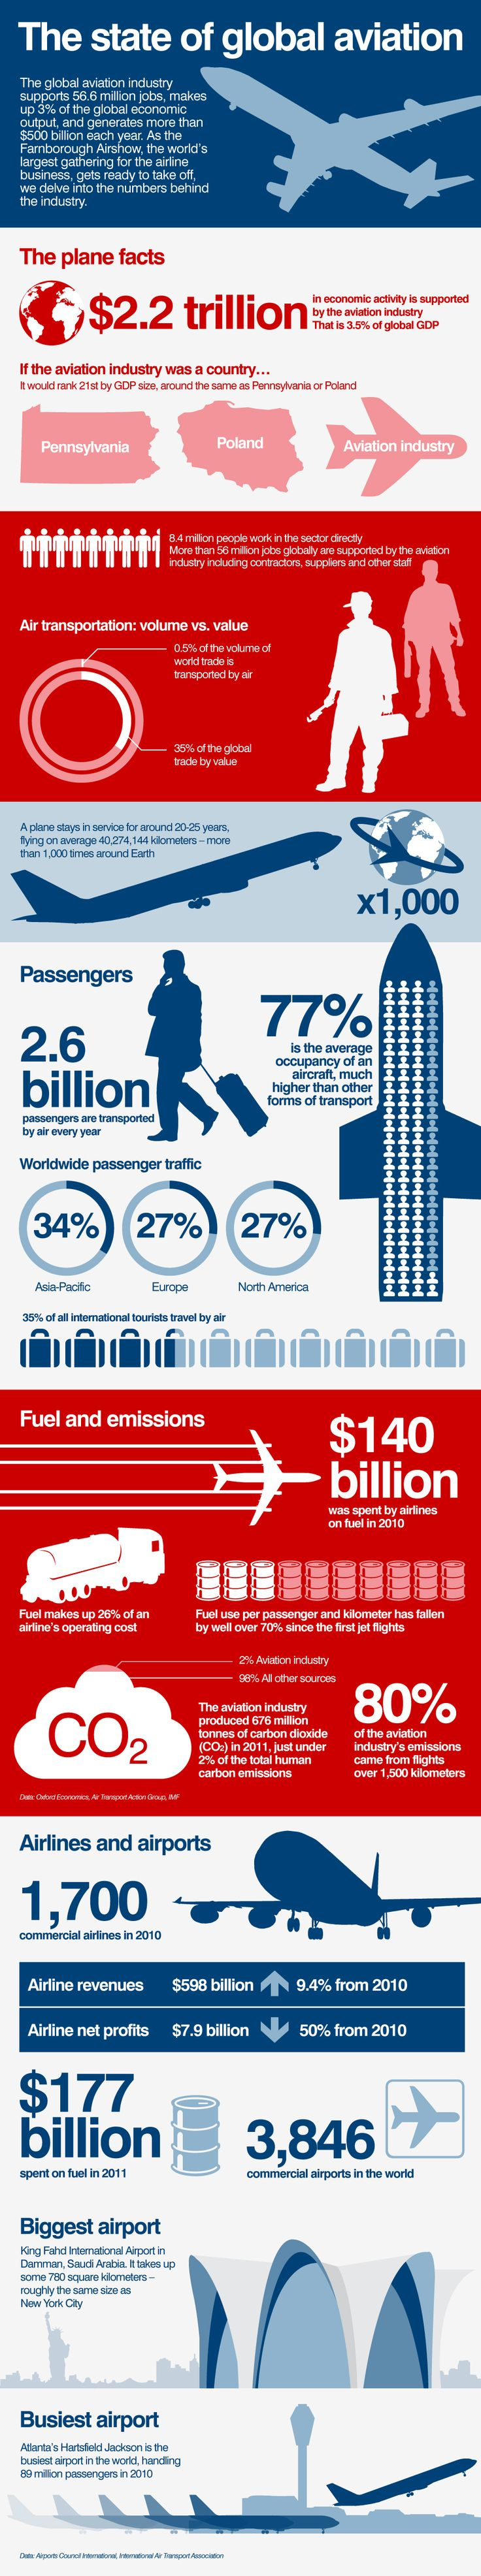 "[infographic] ""The state of Global Aviation"" Jun-2013 by cnn.com - Original Post: http://edition.cnn.com/2012/07/02/business/global-aviation"